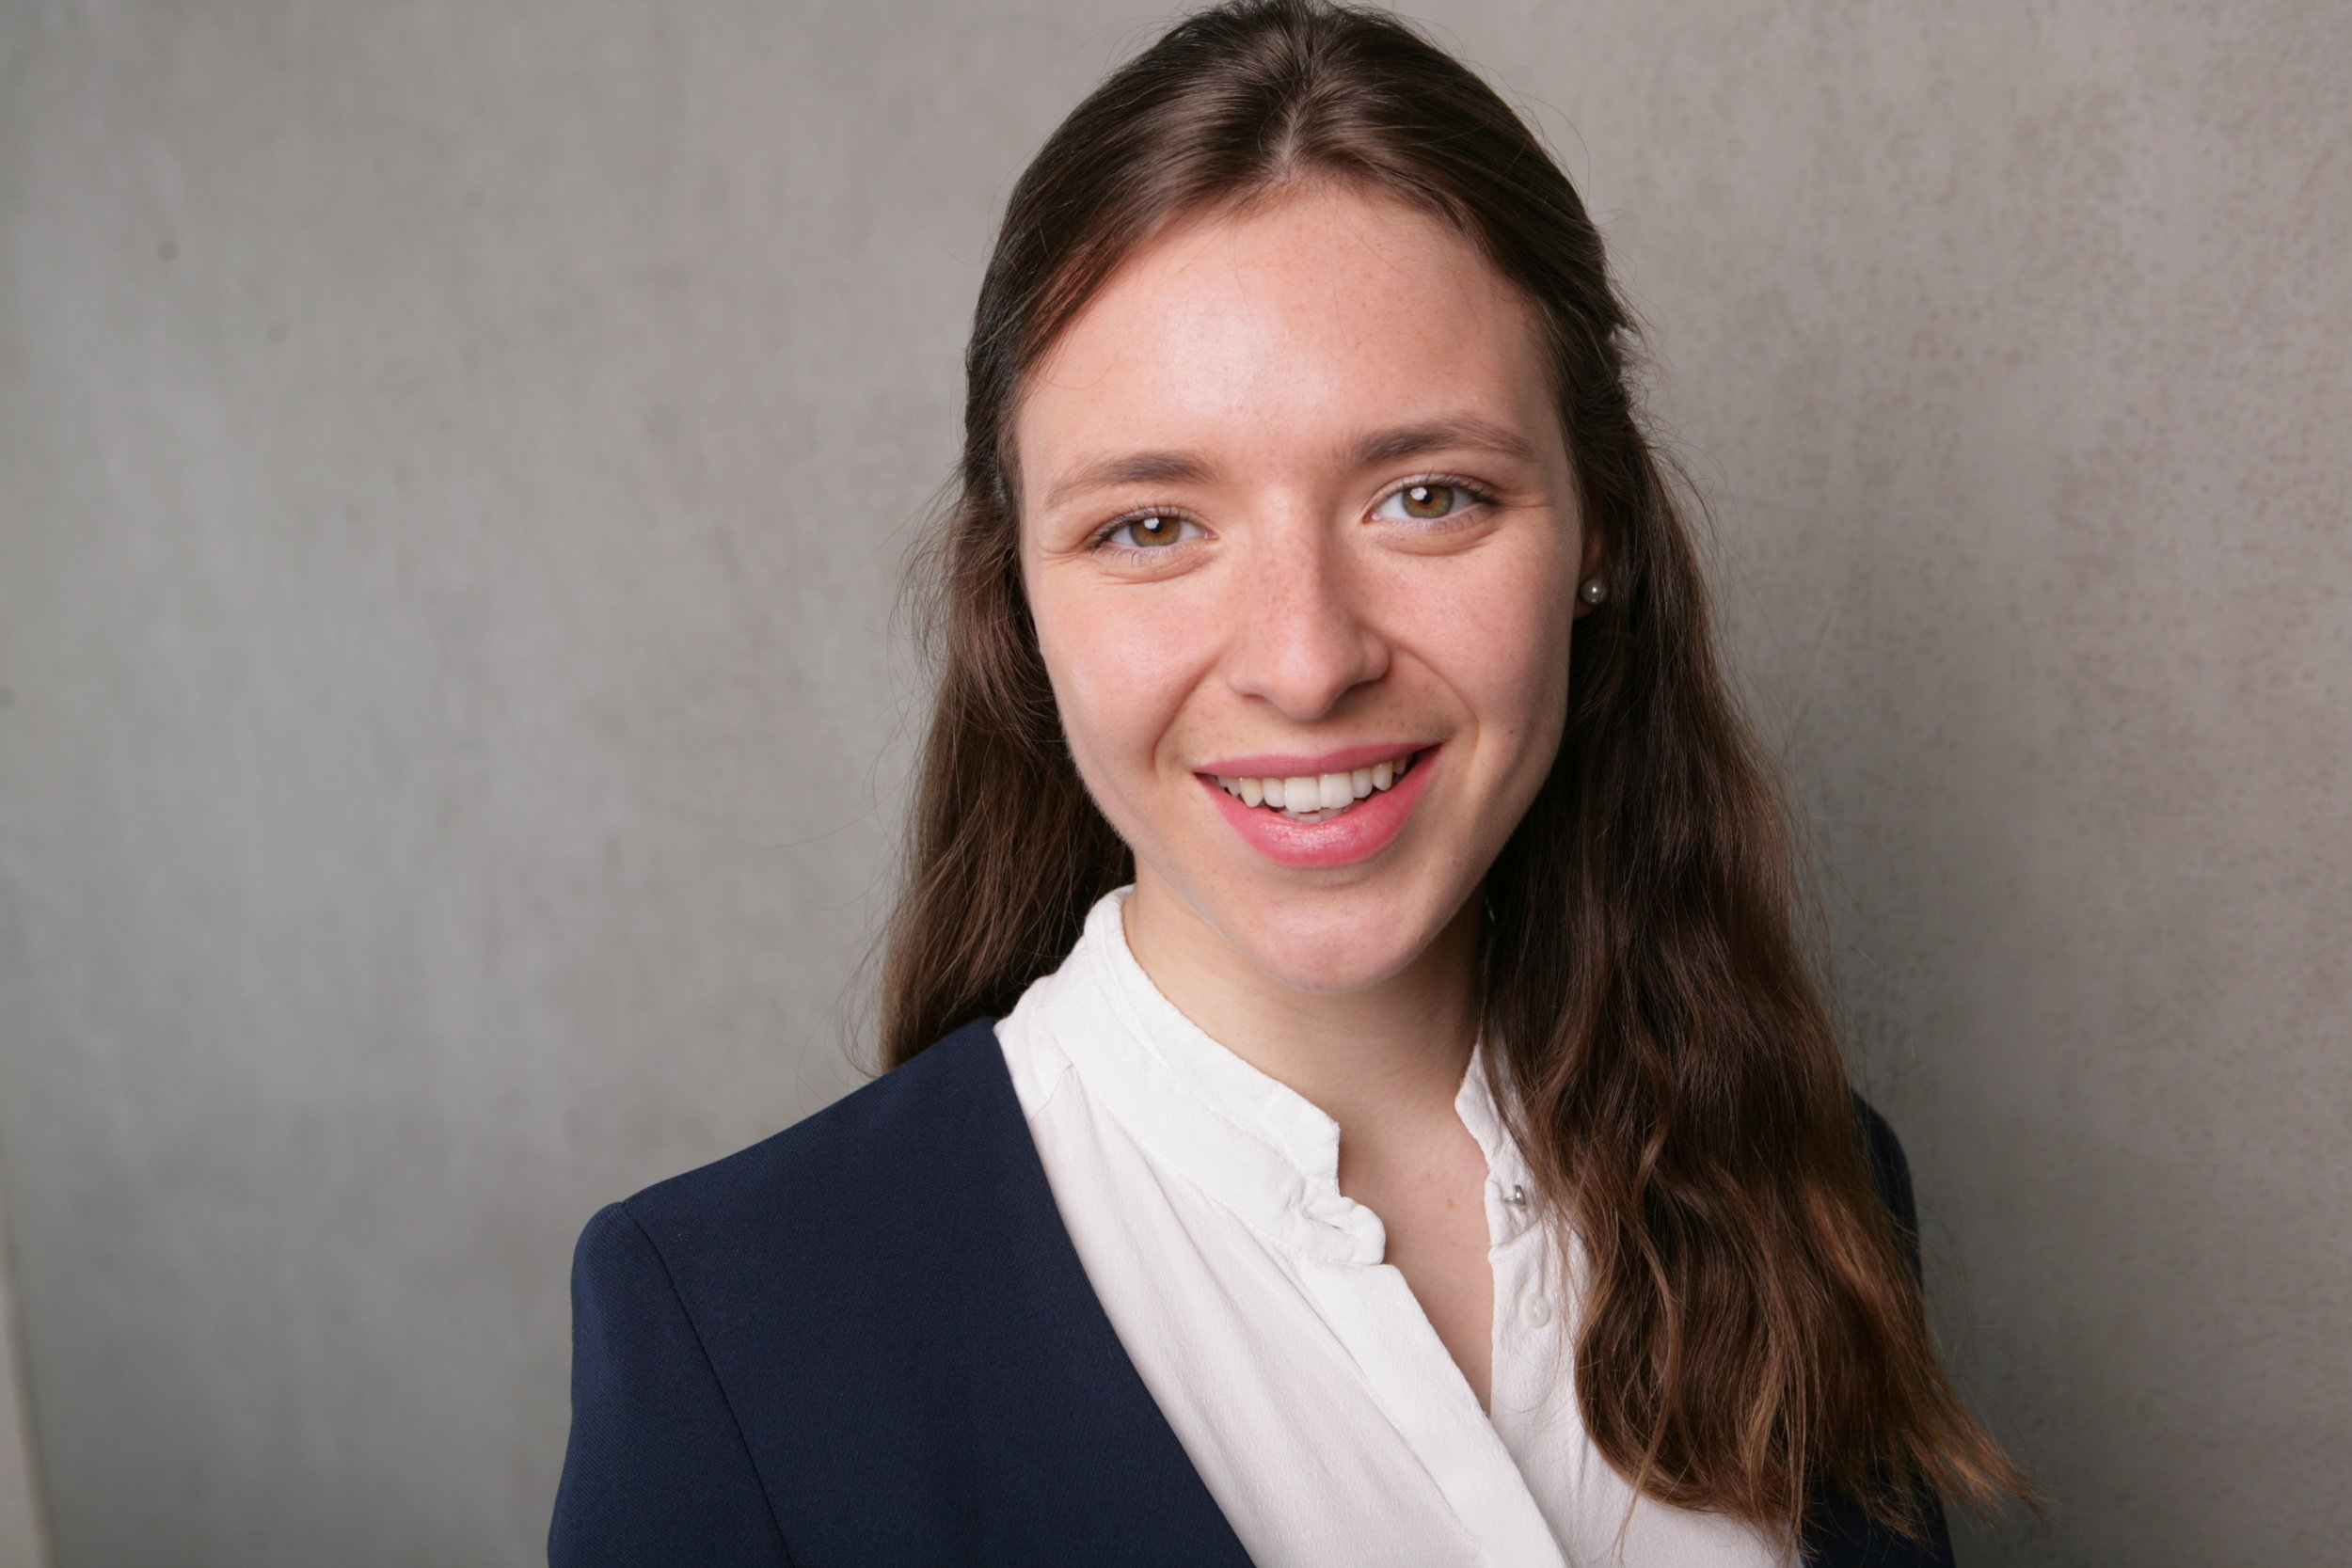 Laura Franke-Tech Architect - Laura has leveraged her work in machine learning, software development, big data and blockchain development with a Masters of Science in Industrial Engineering and Management to complete a thesis on optimal blockchain design for operationalizing Article 6 of the Paris Agreement. Her experience working at IBM, Google and KPMG, paired with focus on deployment of blockchain technology for international climate collaboration make her an powerful asset to the Blockchain for Climate team.